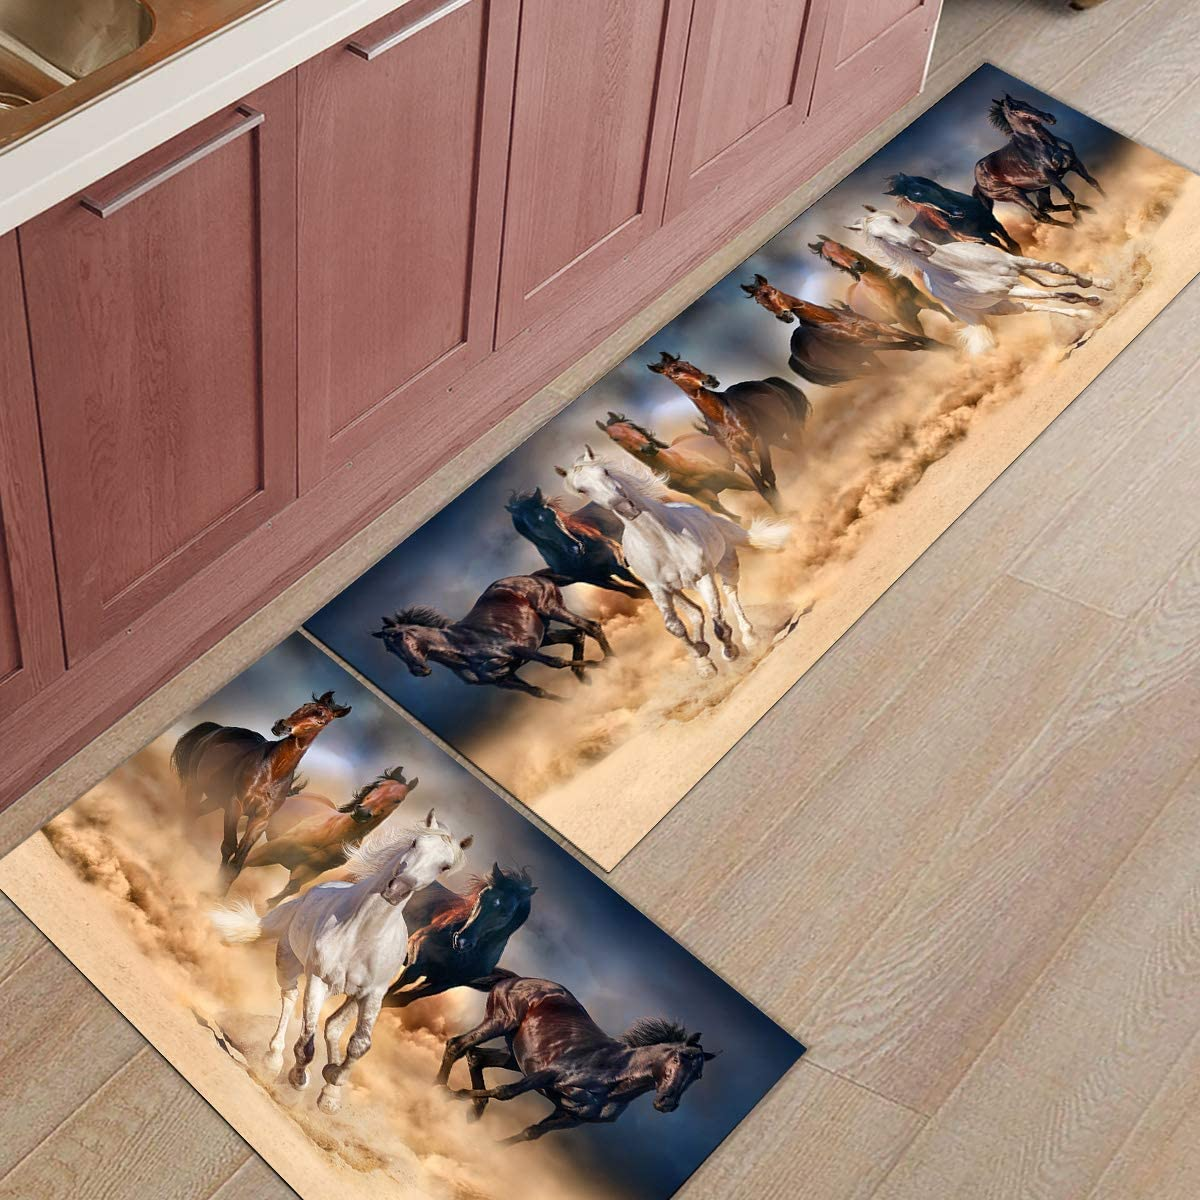 """Libaoge Kitchen Rugs and Mats Set of 2 - Running Horse Doormat with Non Skid Rubber Backing Floor Mat Accent Area Runner Indoor Entrance Carpet 23.6""""x35.4""""+23.6""""x70.9"""""""